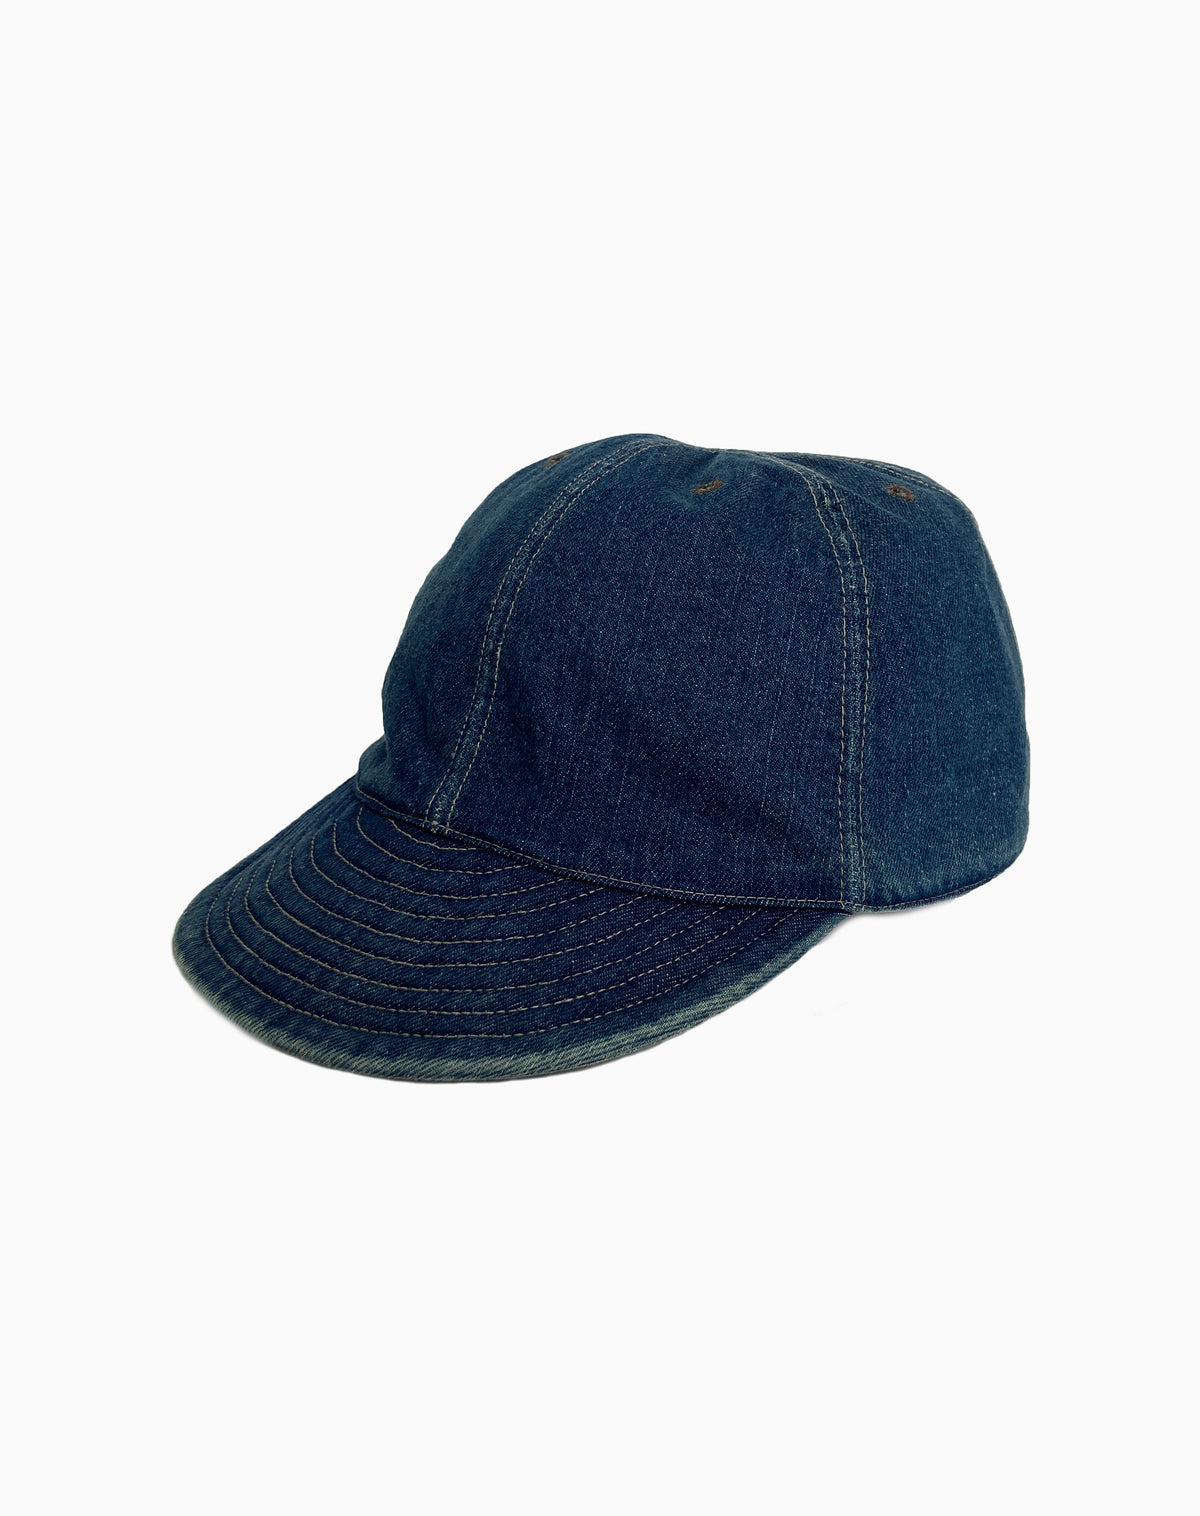 Mechanic's Cap in Denim